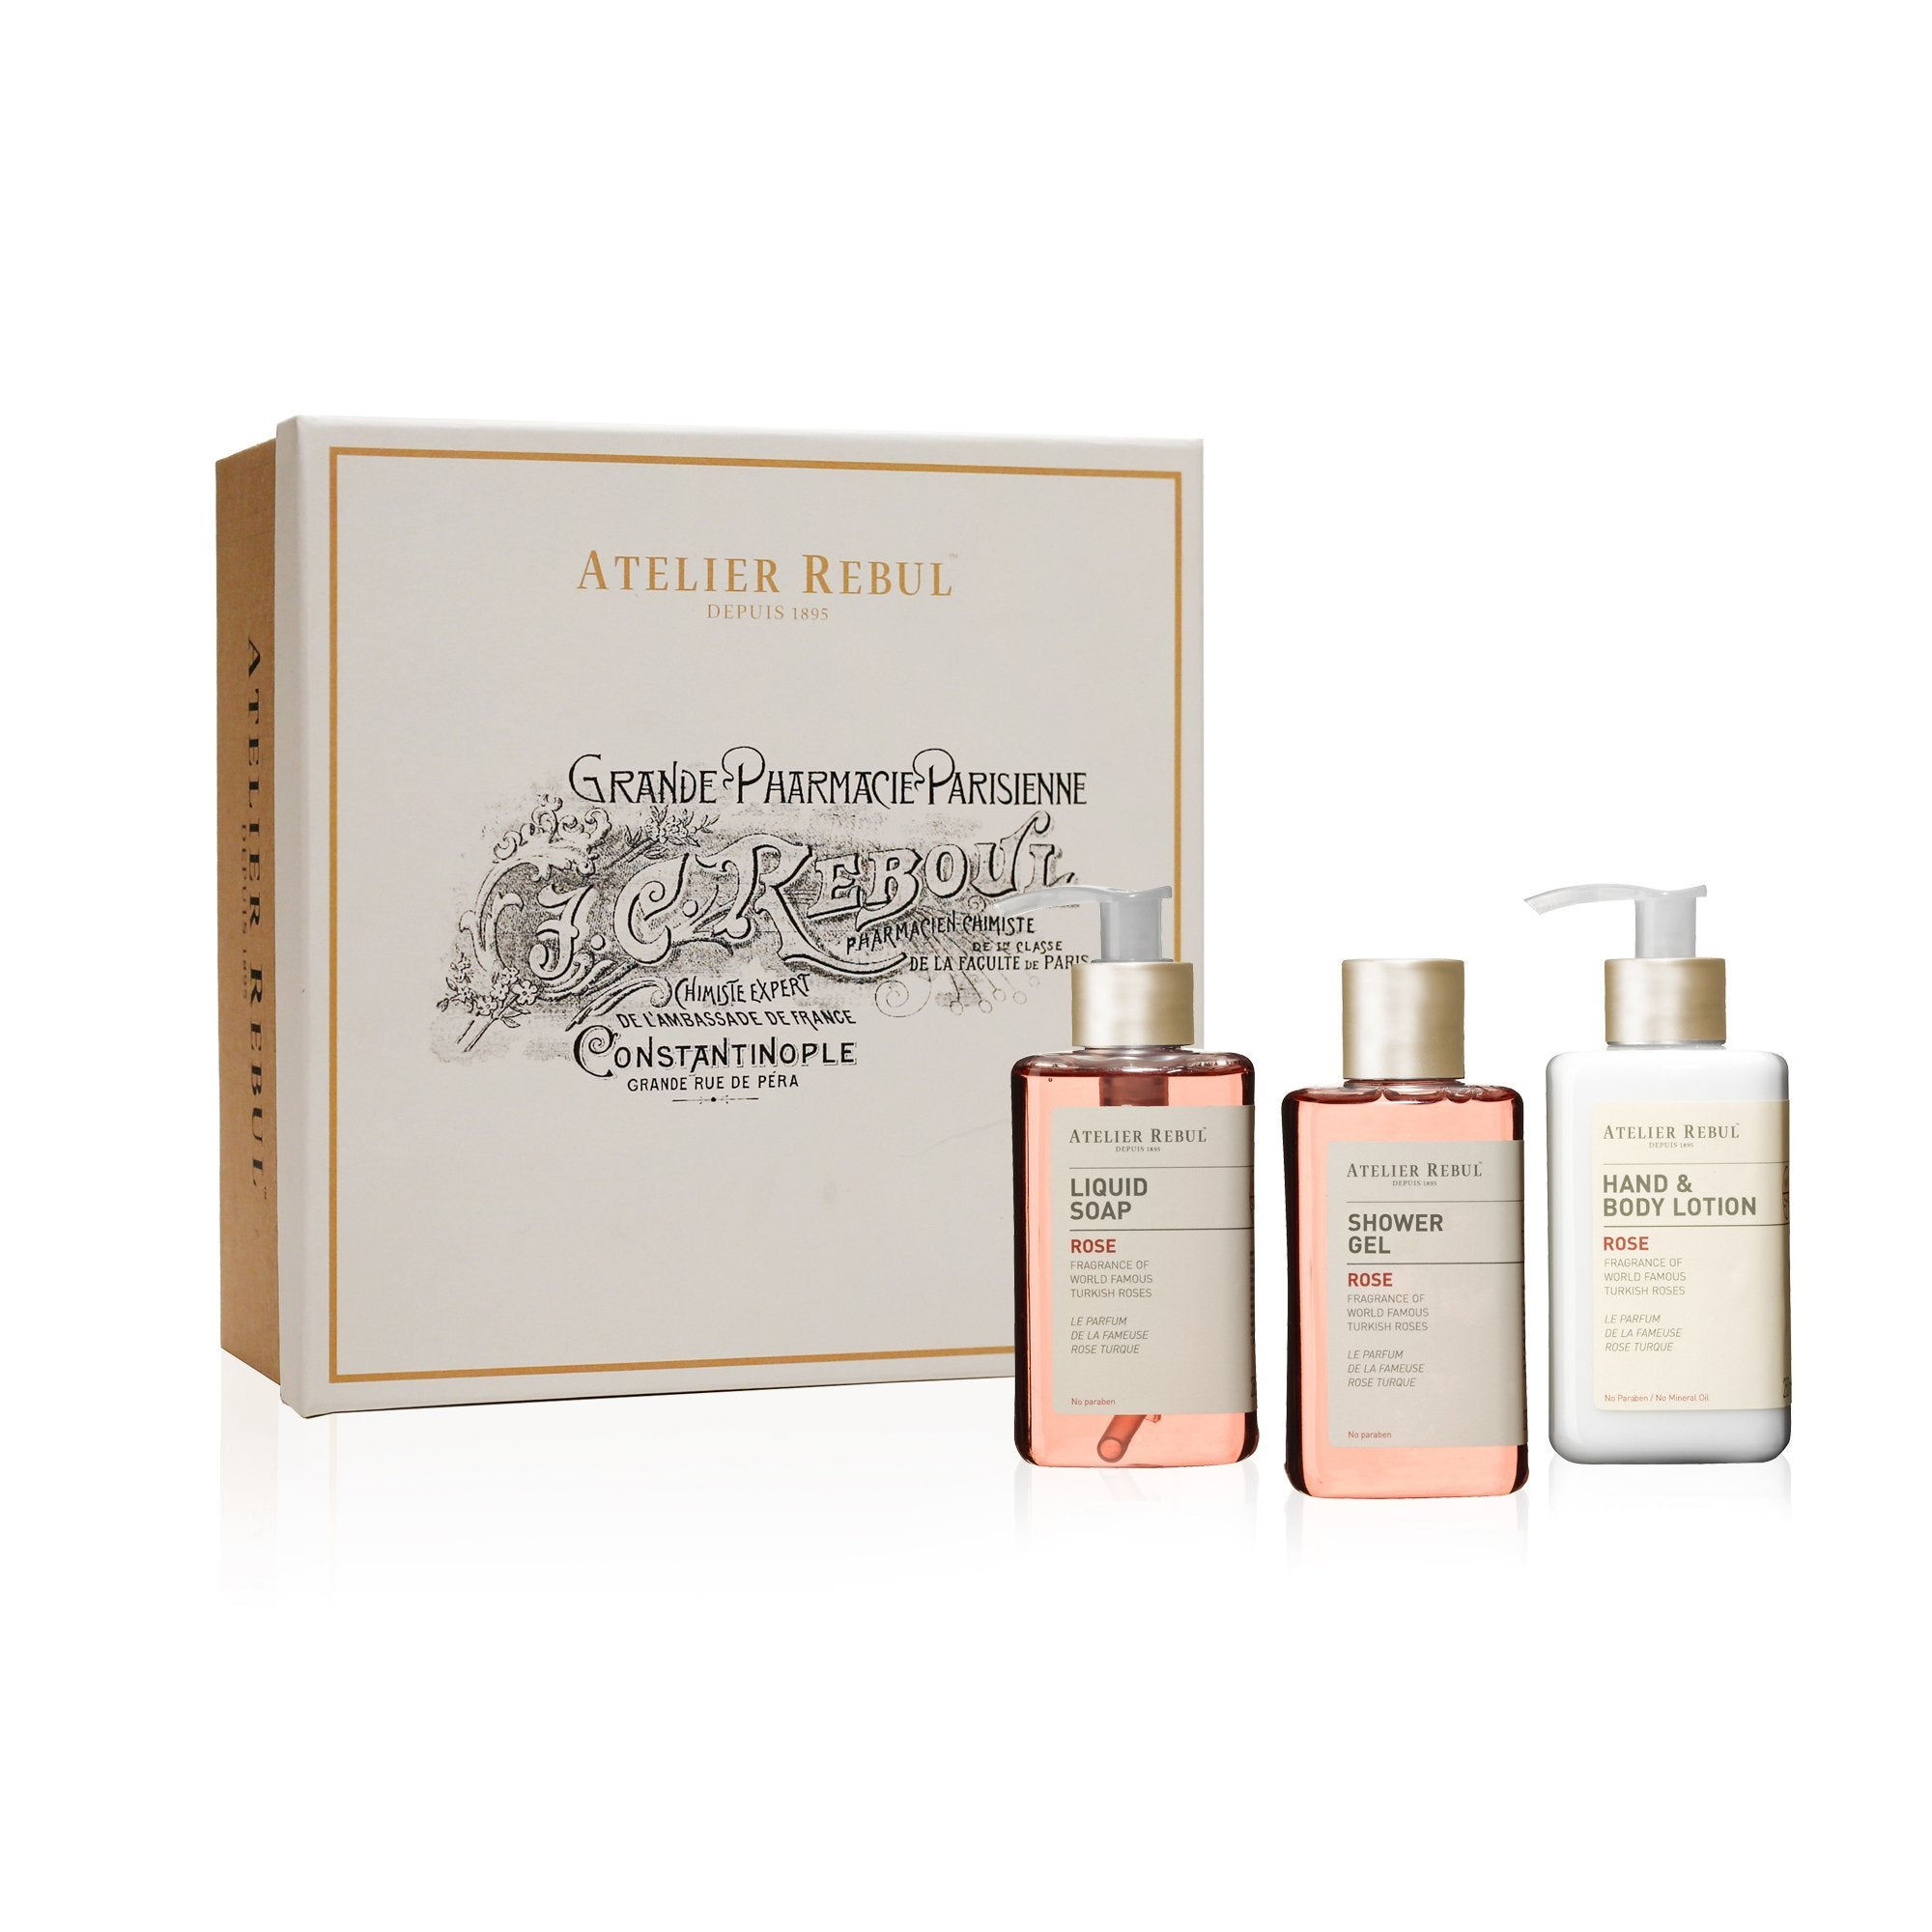 Rose Liquid Soap, Shower Gel, Hand & Body Lotion Giftset